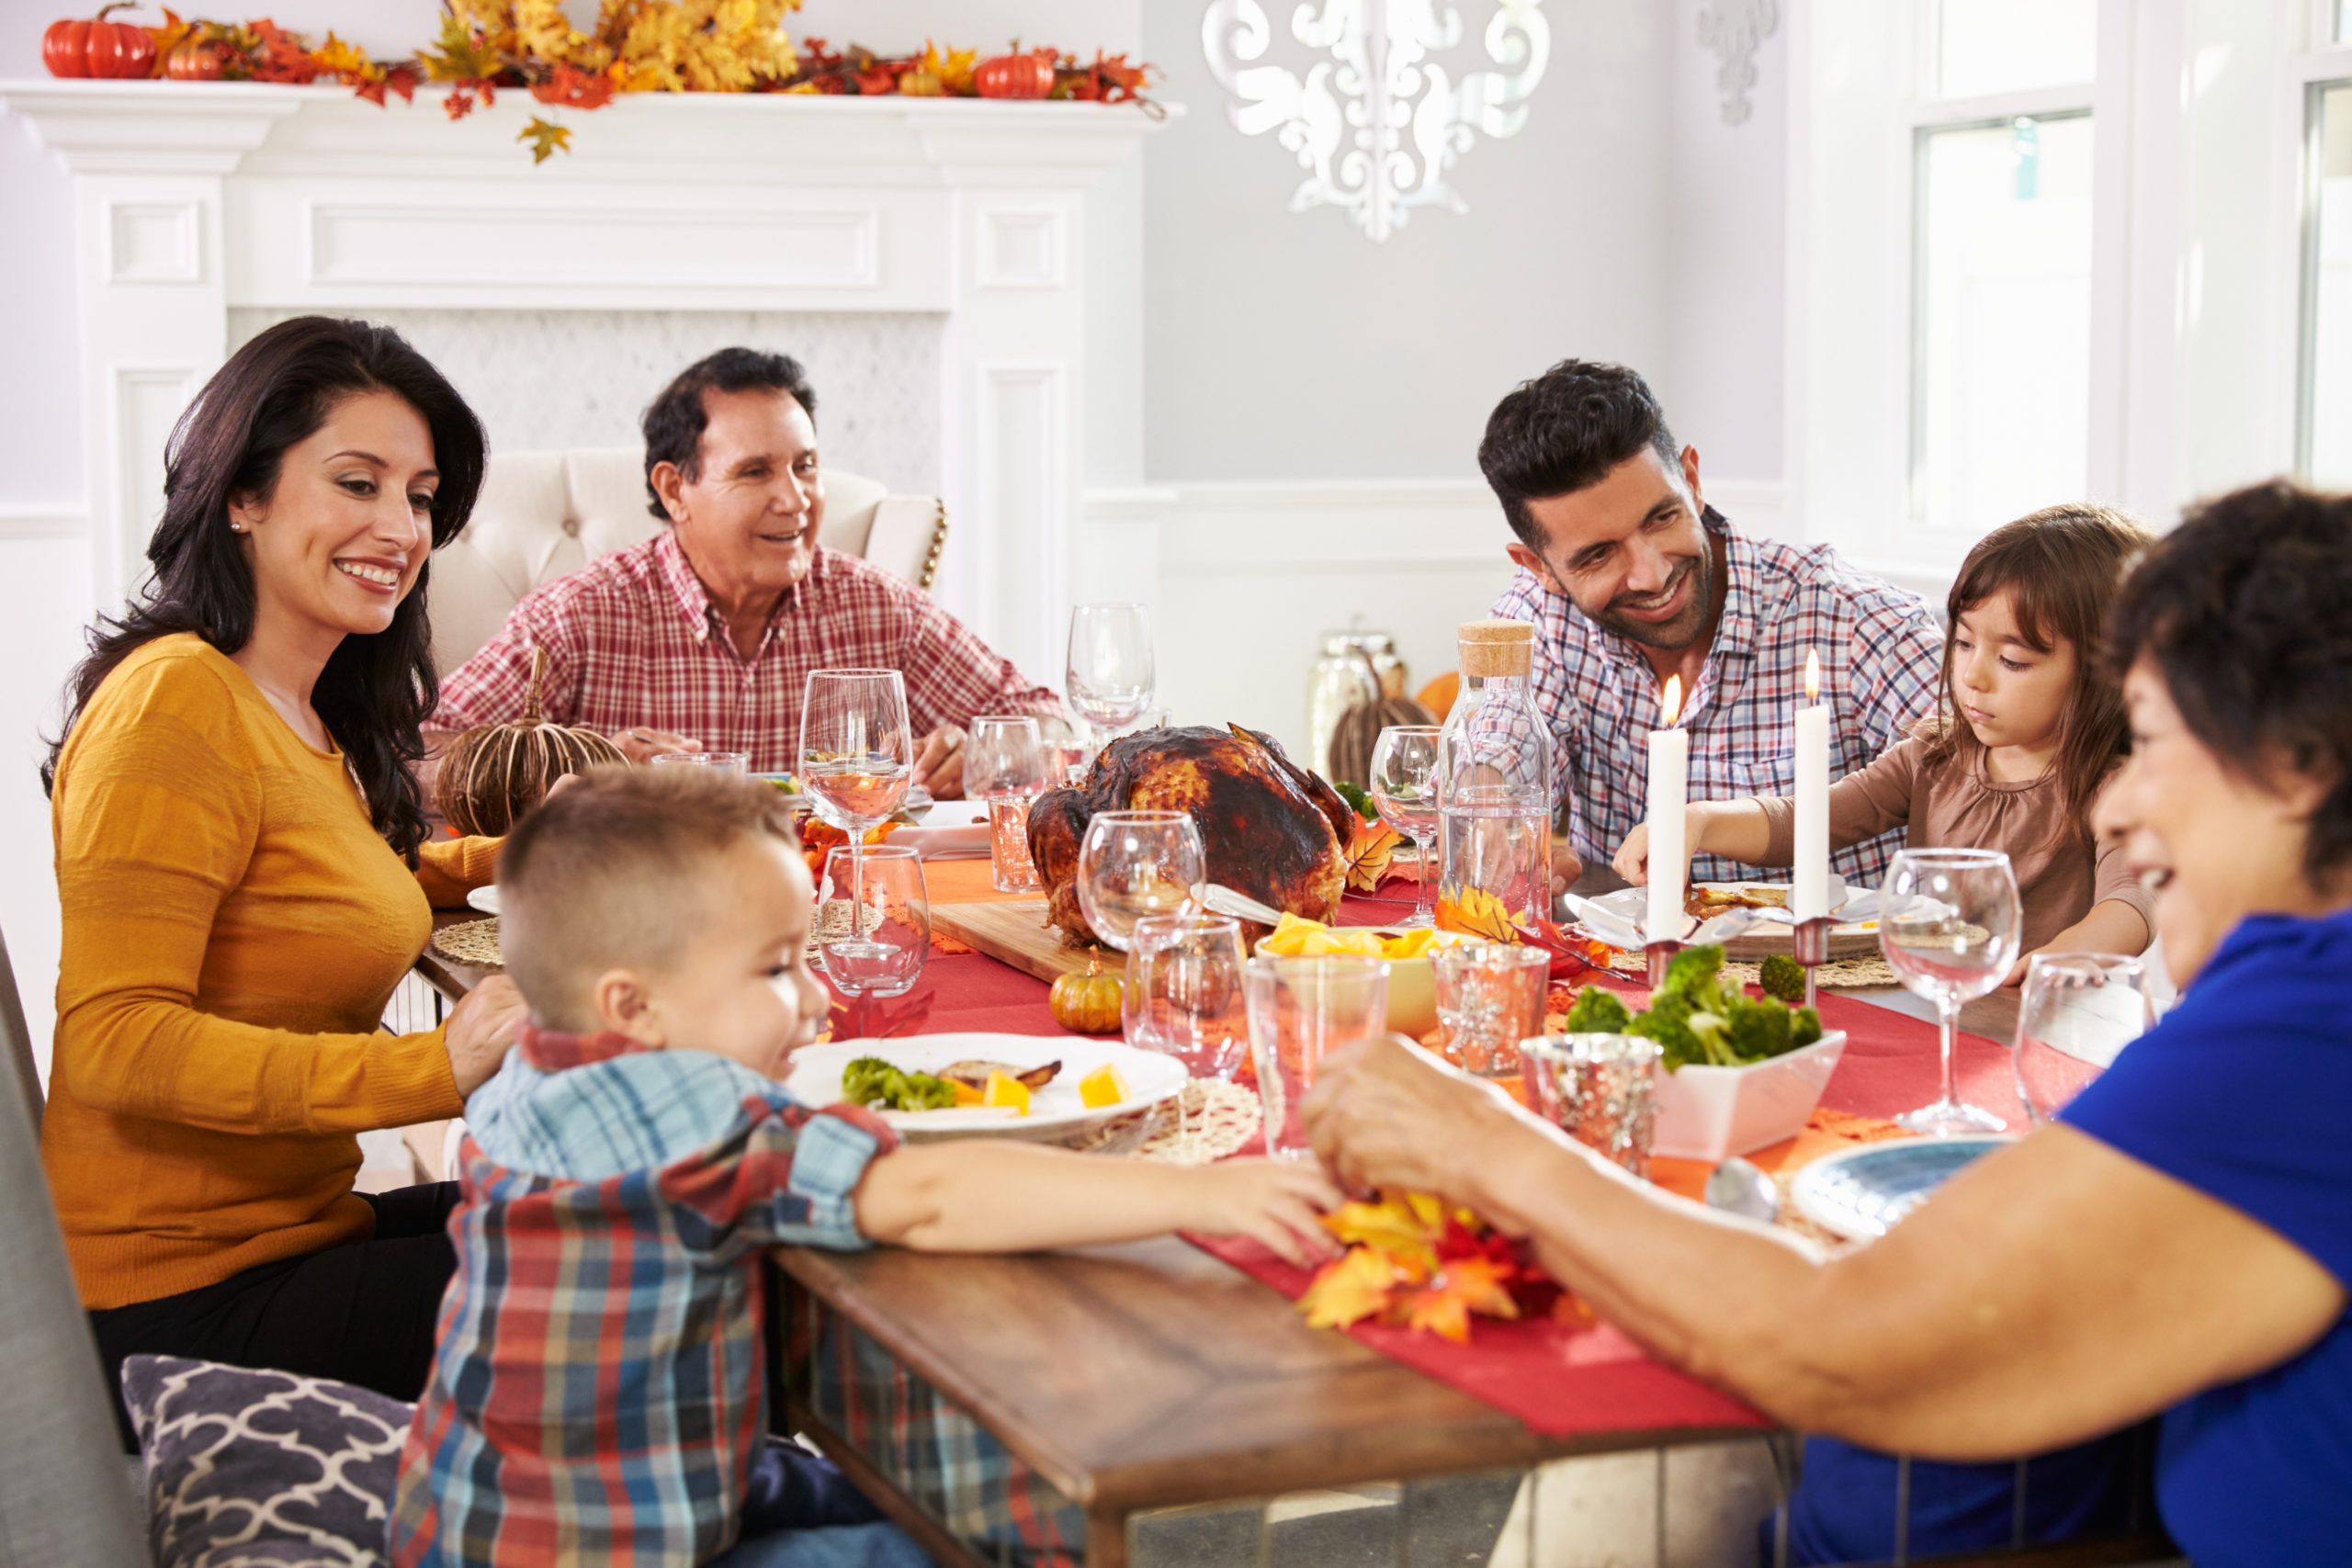 Preparing Your Home for Hosting